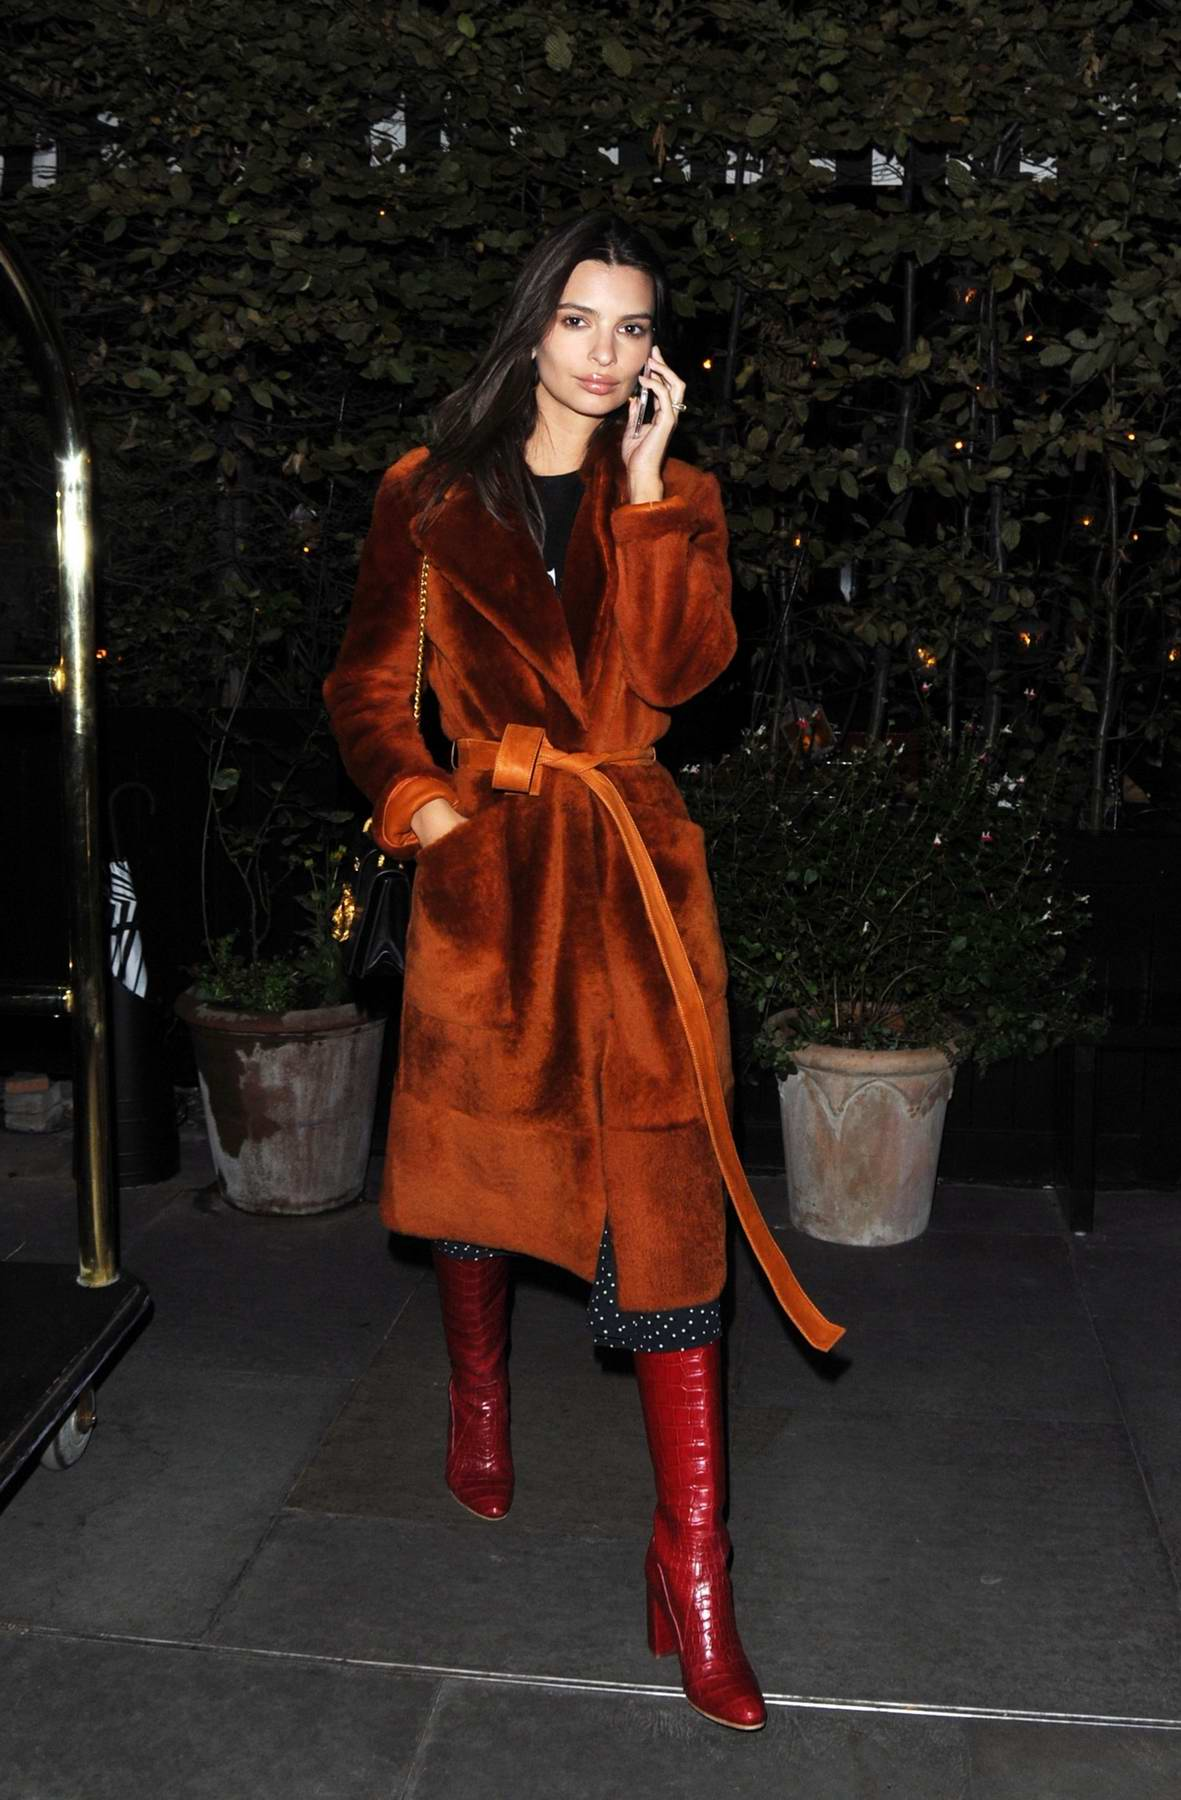 Emily Ratajkowski busy on her phone while leaving the Chiltern Firehouse in London